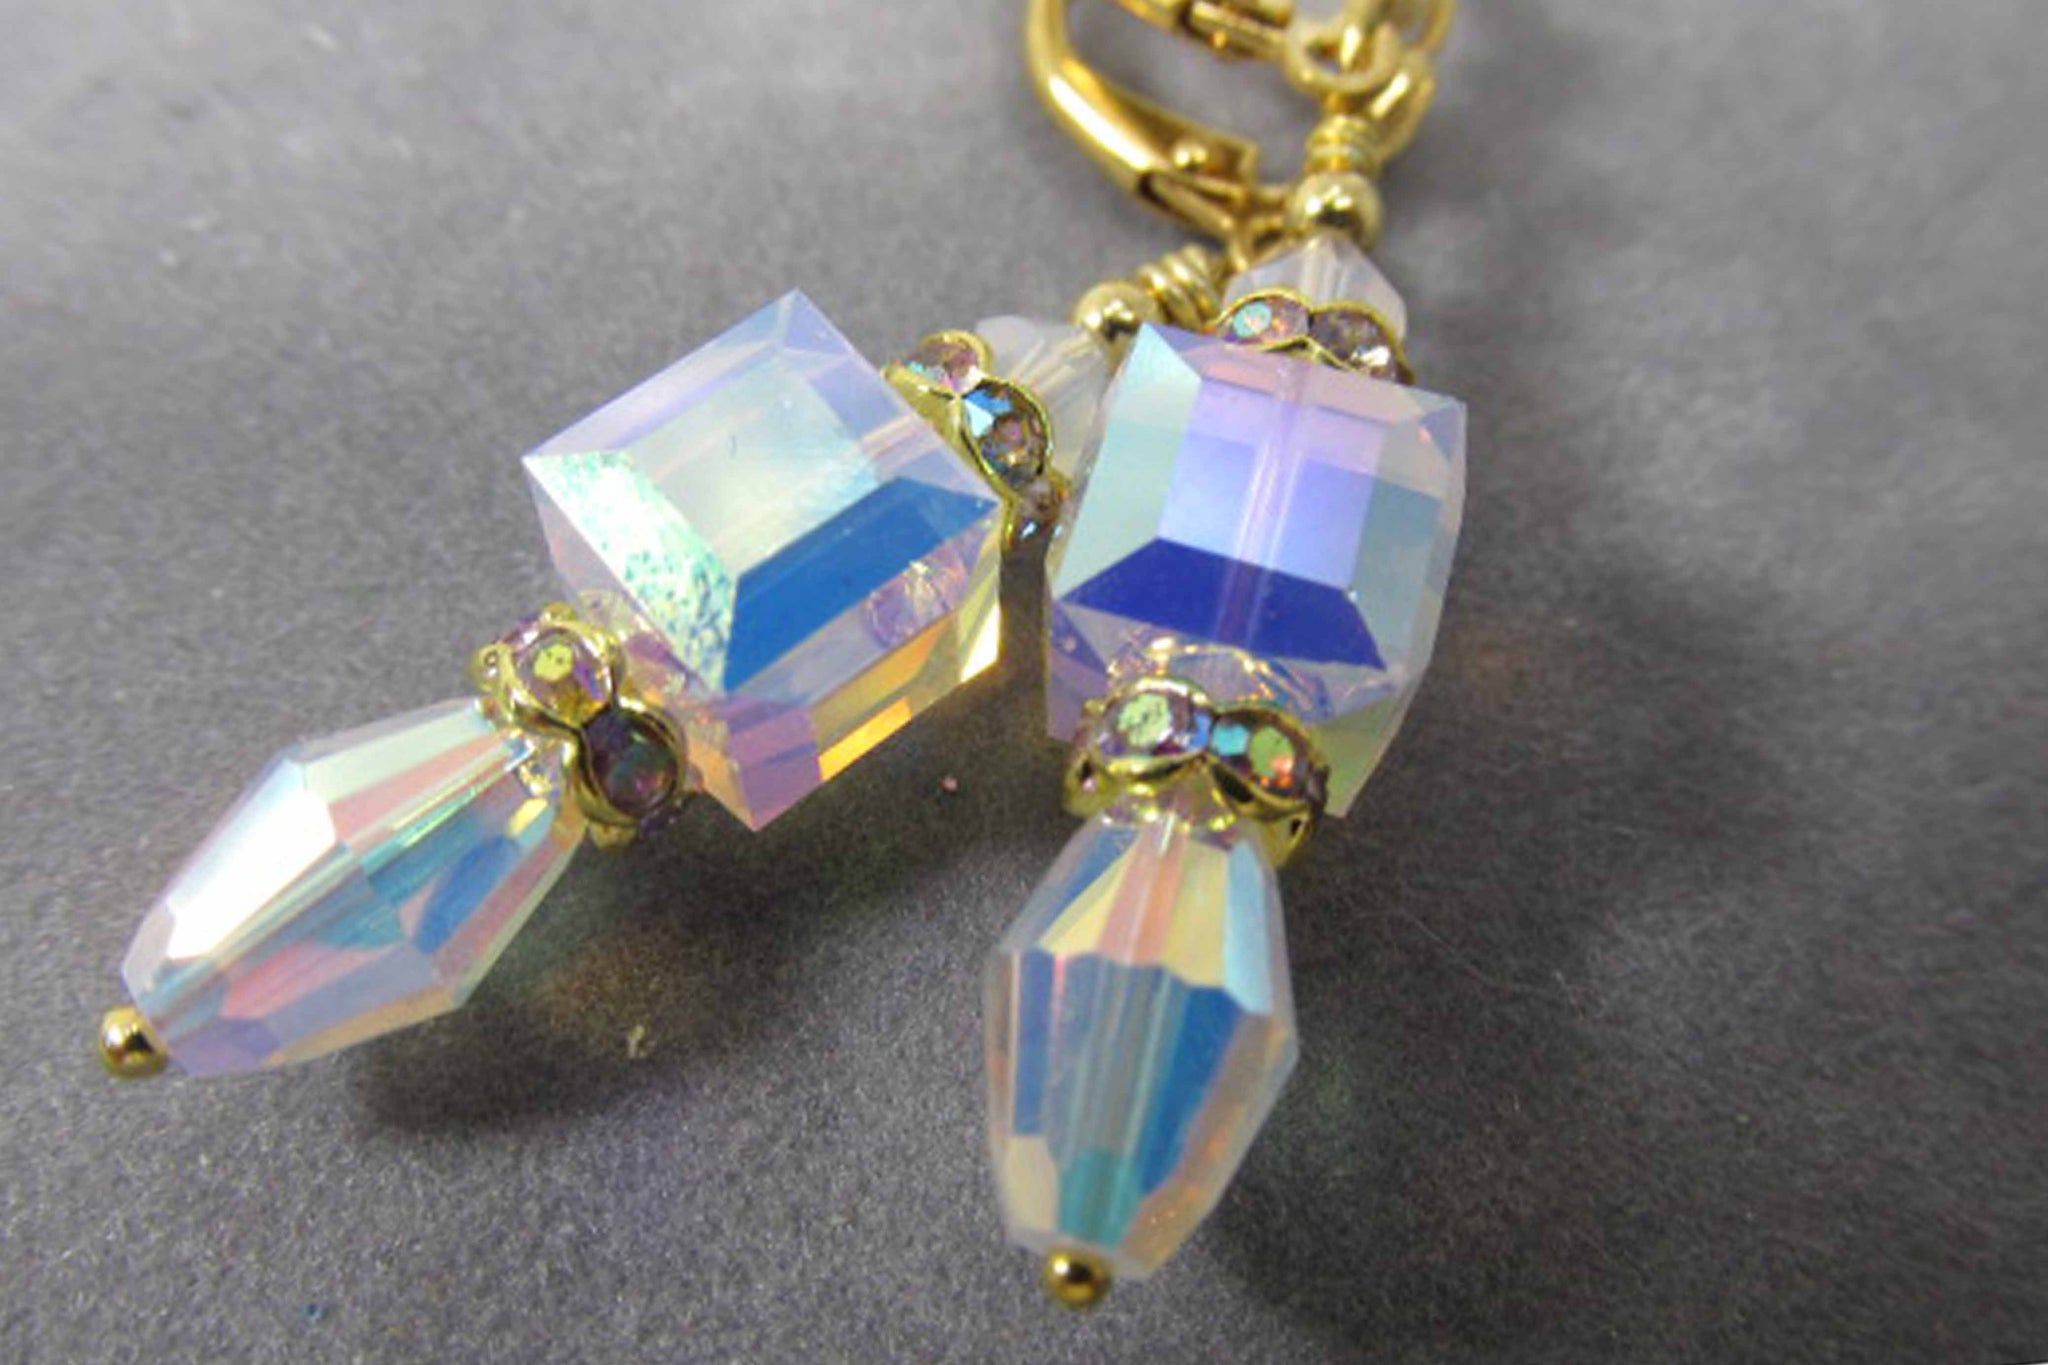 White Opal Swarovski 8mm Faceted Cube and Vintage Barrel Crystal Earrings - Odyssey Creations